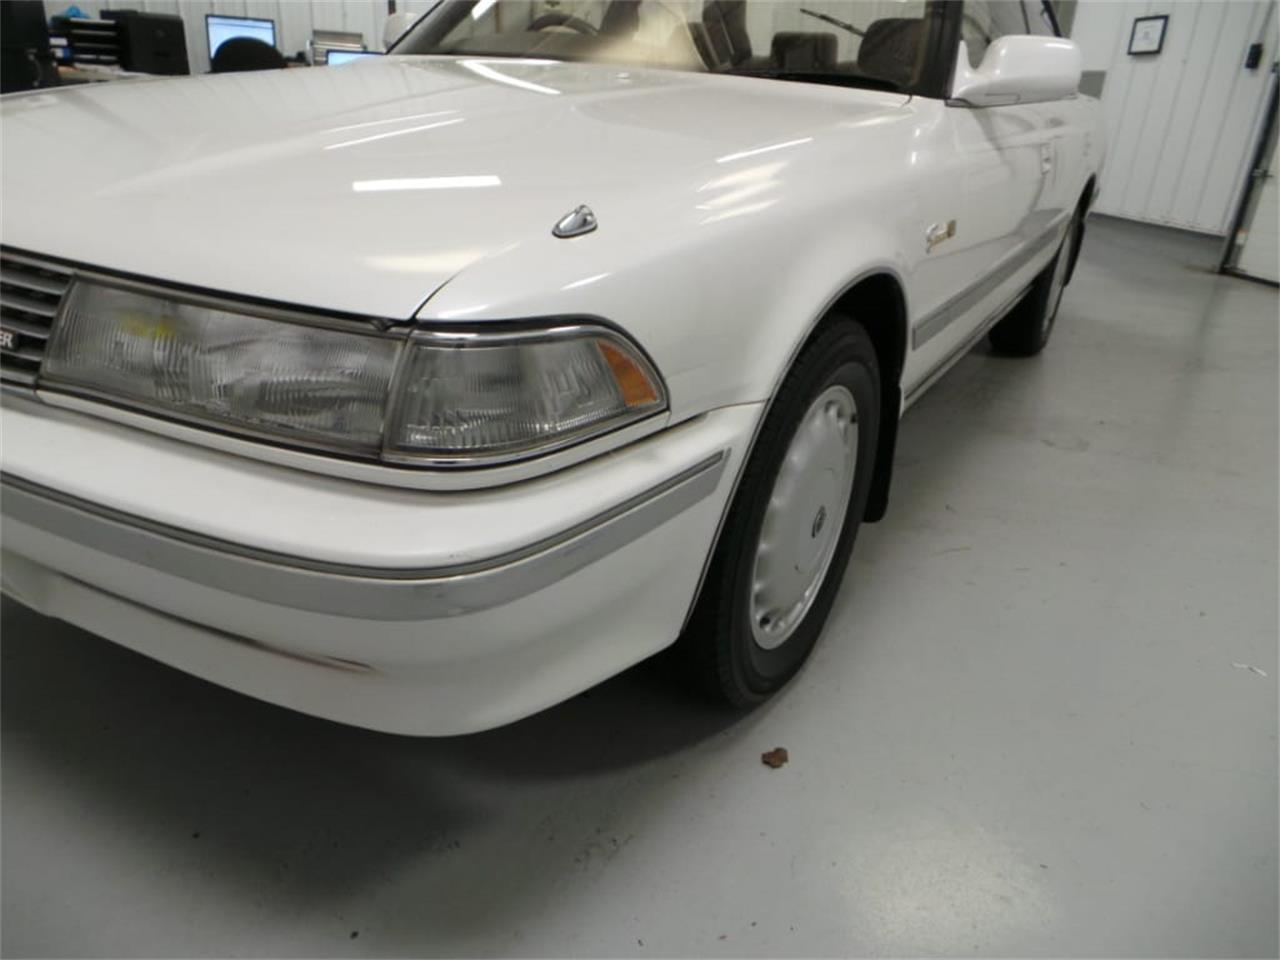 Large Picture of '88 Corona Mark II located in Christiansburg Virginia Offered by Duncan Imports & Classic Cars - JLDS